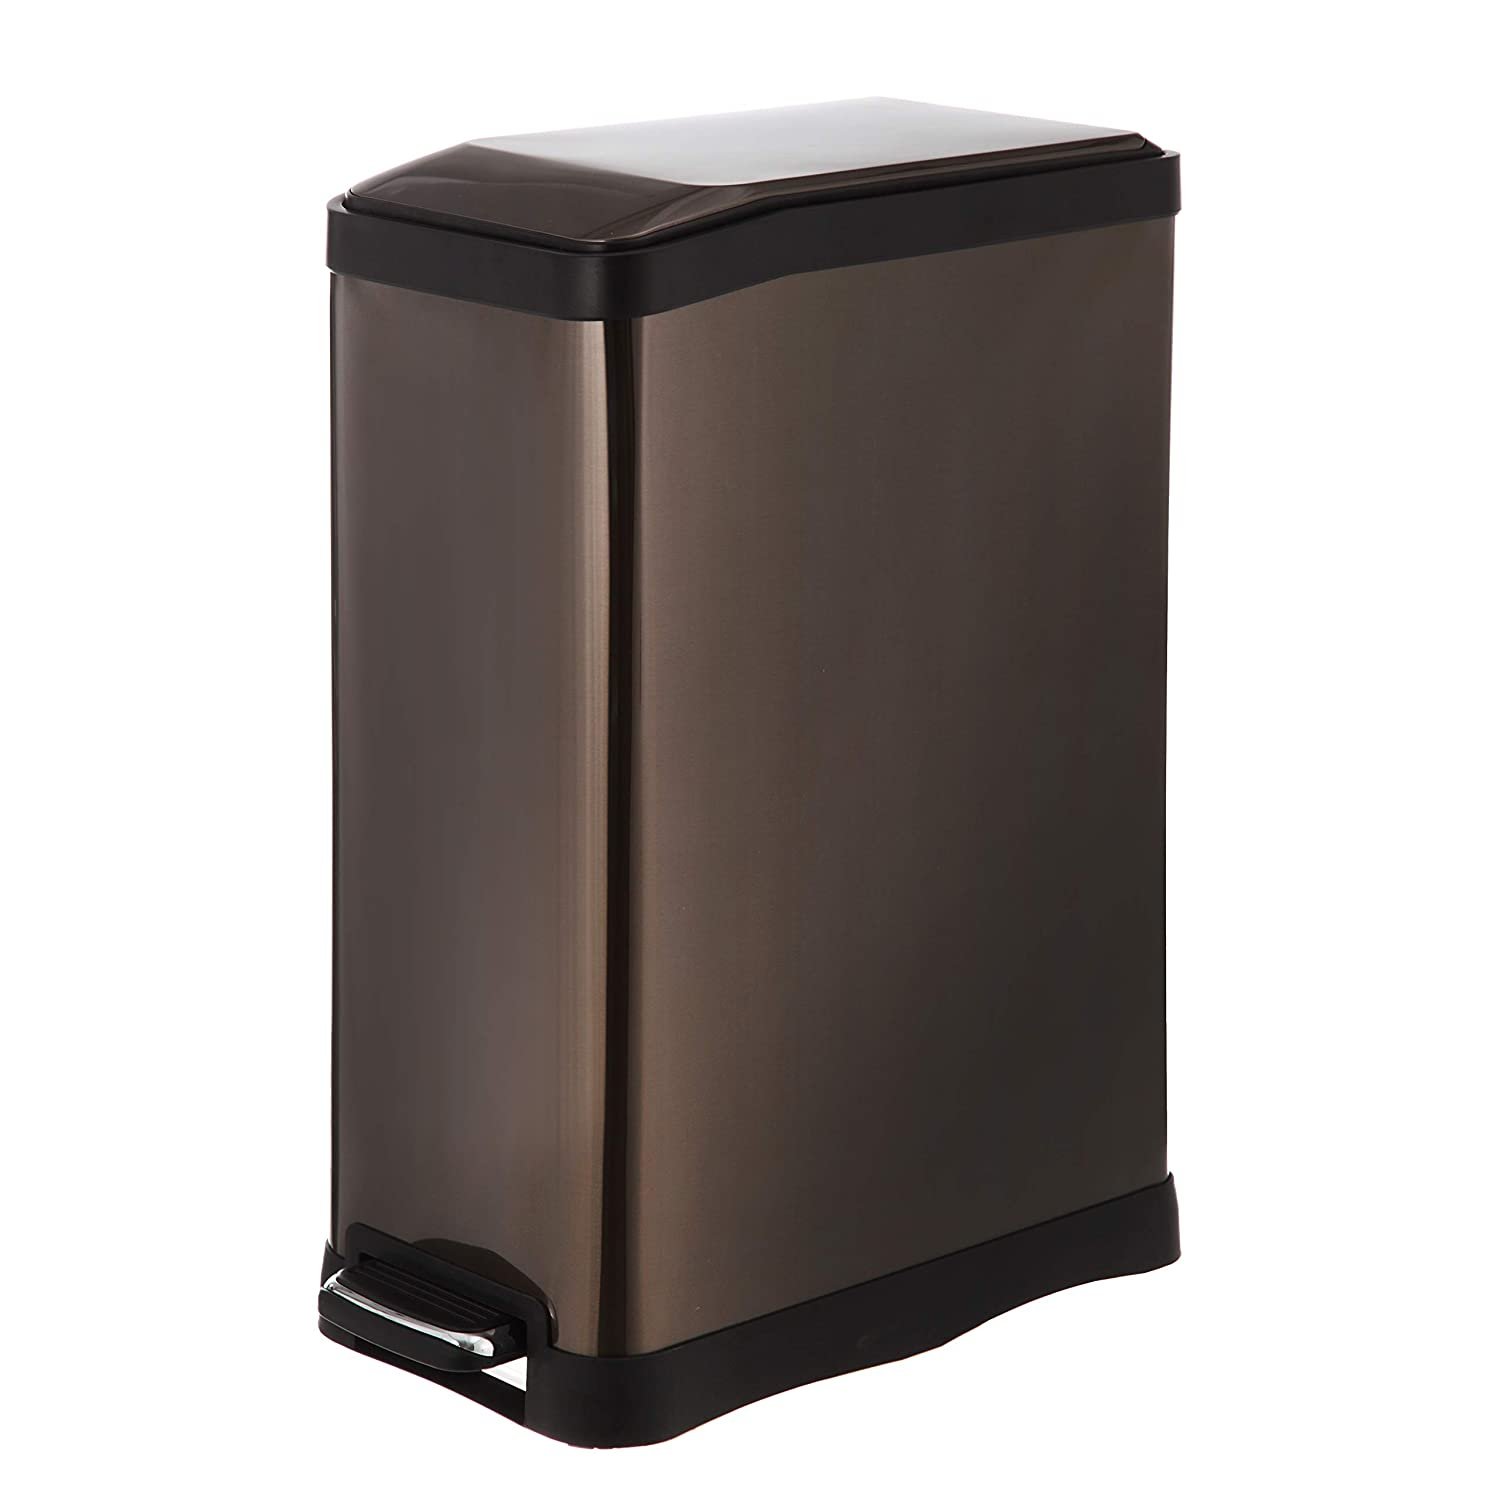 Home Zone Stainless Steel Kitchen Trash Can with Rectangular Design and Step Pedal | 45 Liter / 12 Gallon Storage with Removable Plastic Trash Bin Liner, Black